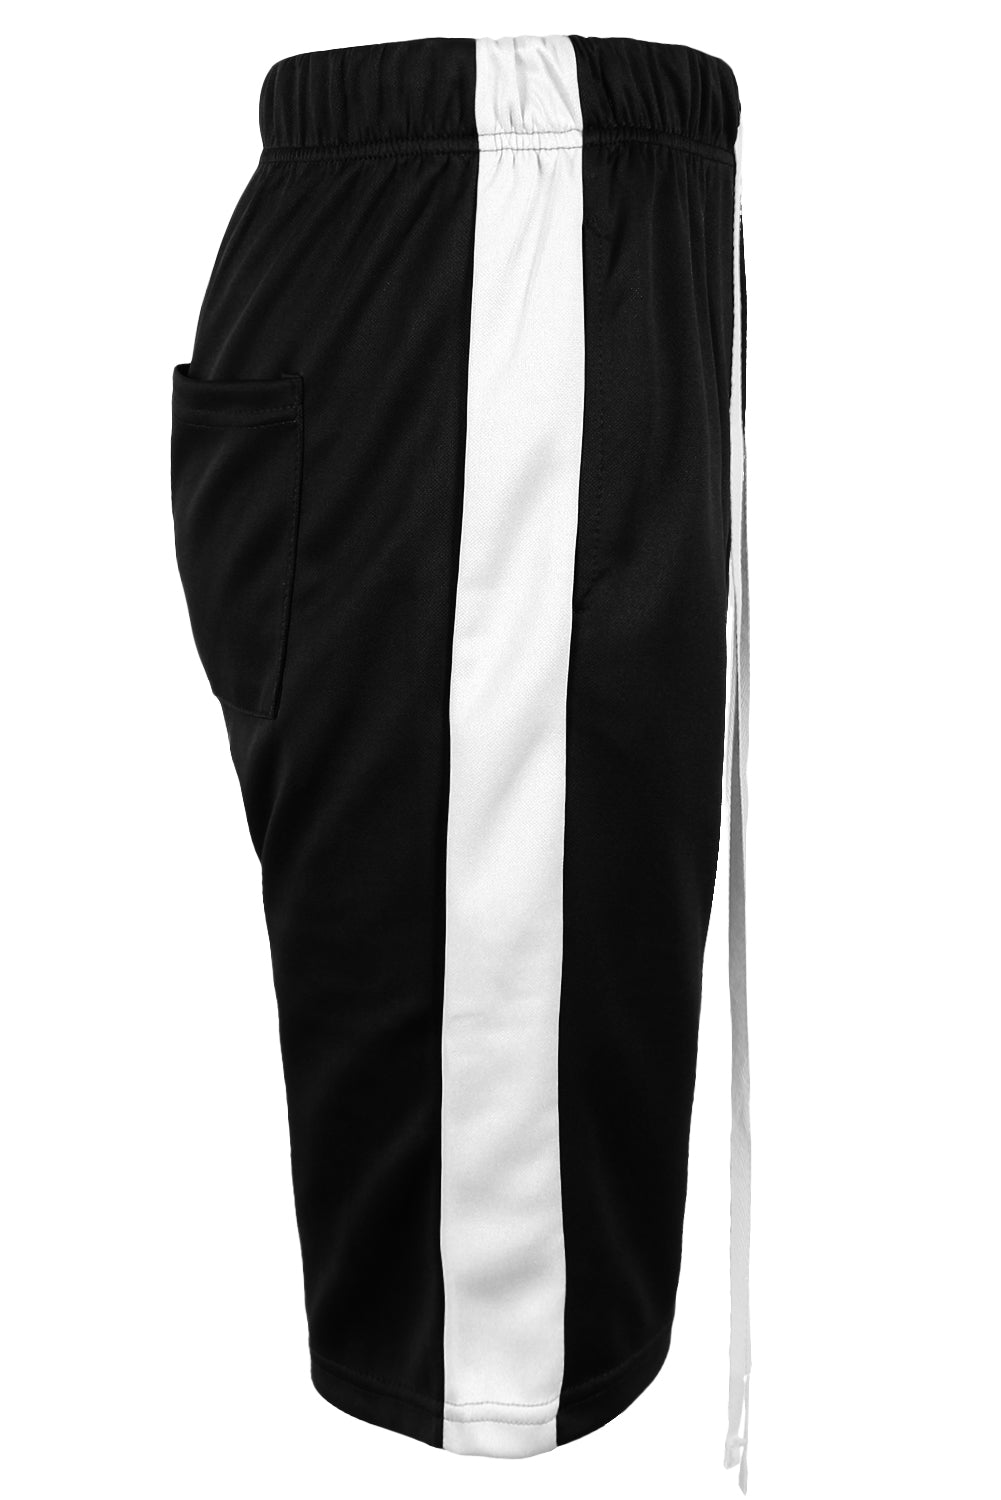 Track Shorts Side Stripes (Black White)